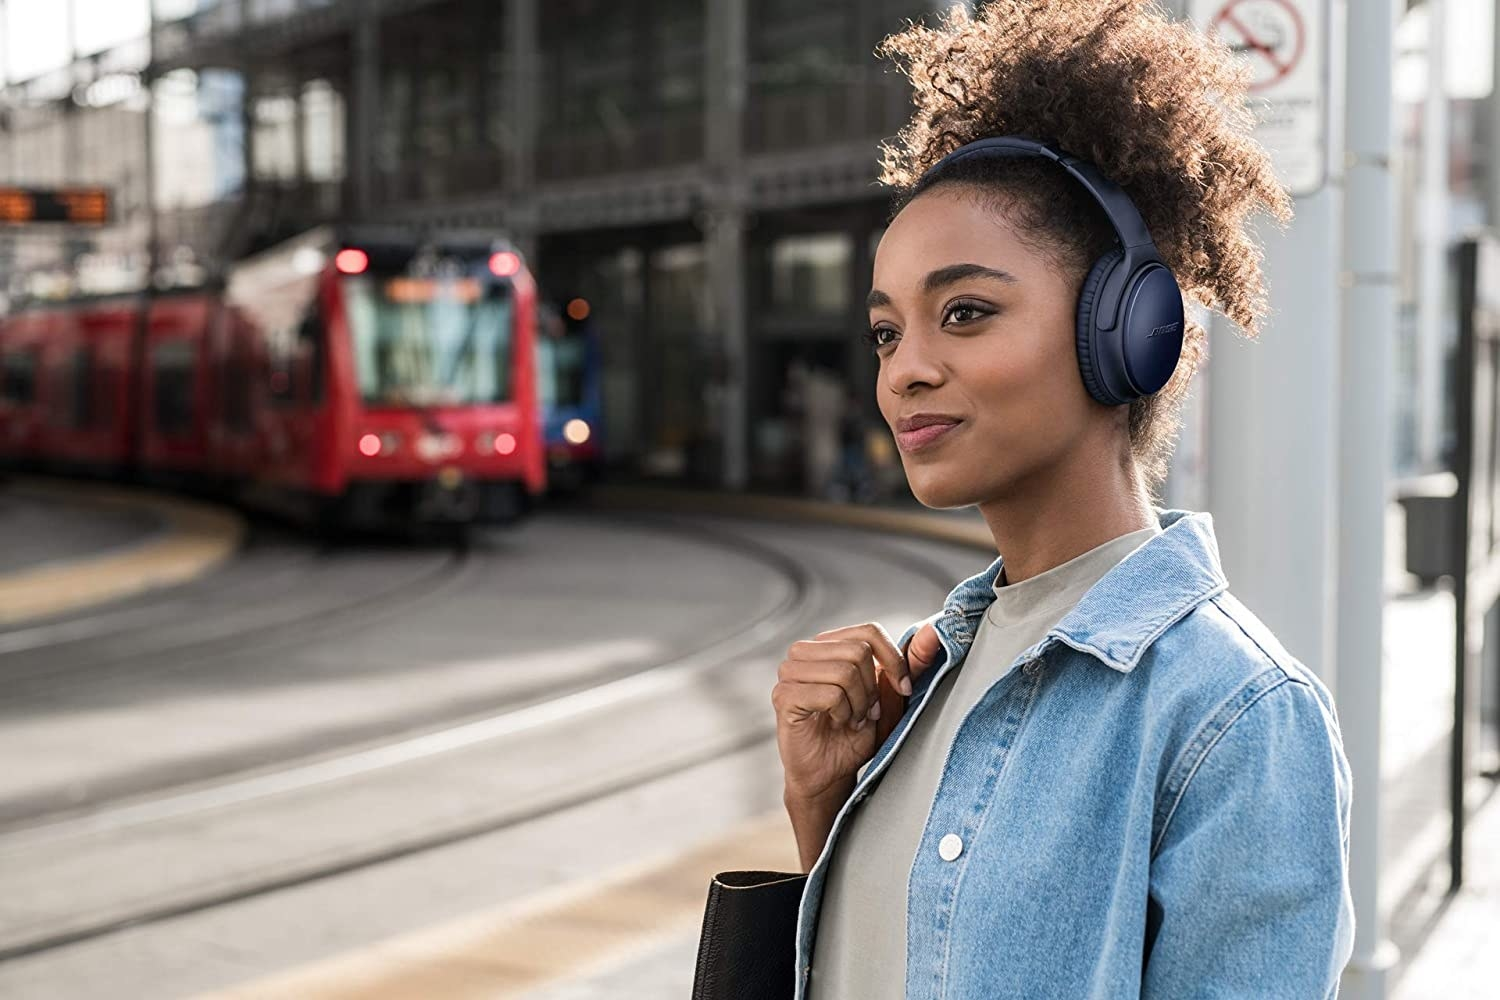 person wearing the headphones on the street